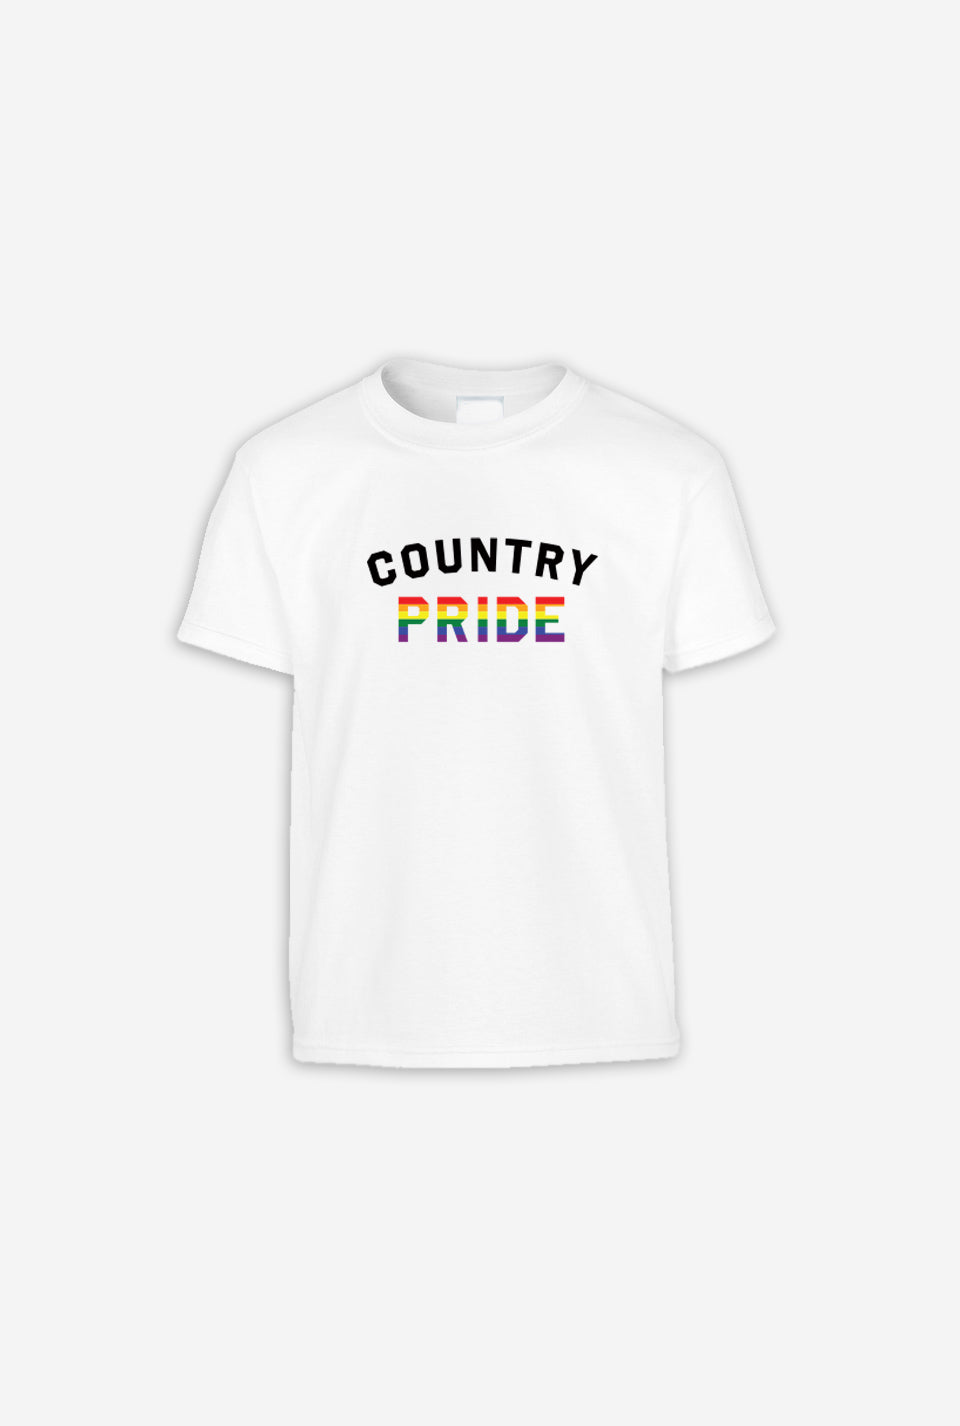 Country Pride Youth T-Shirt - White